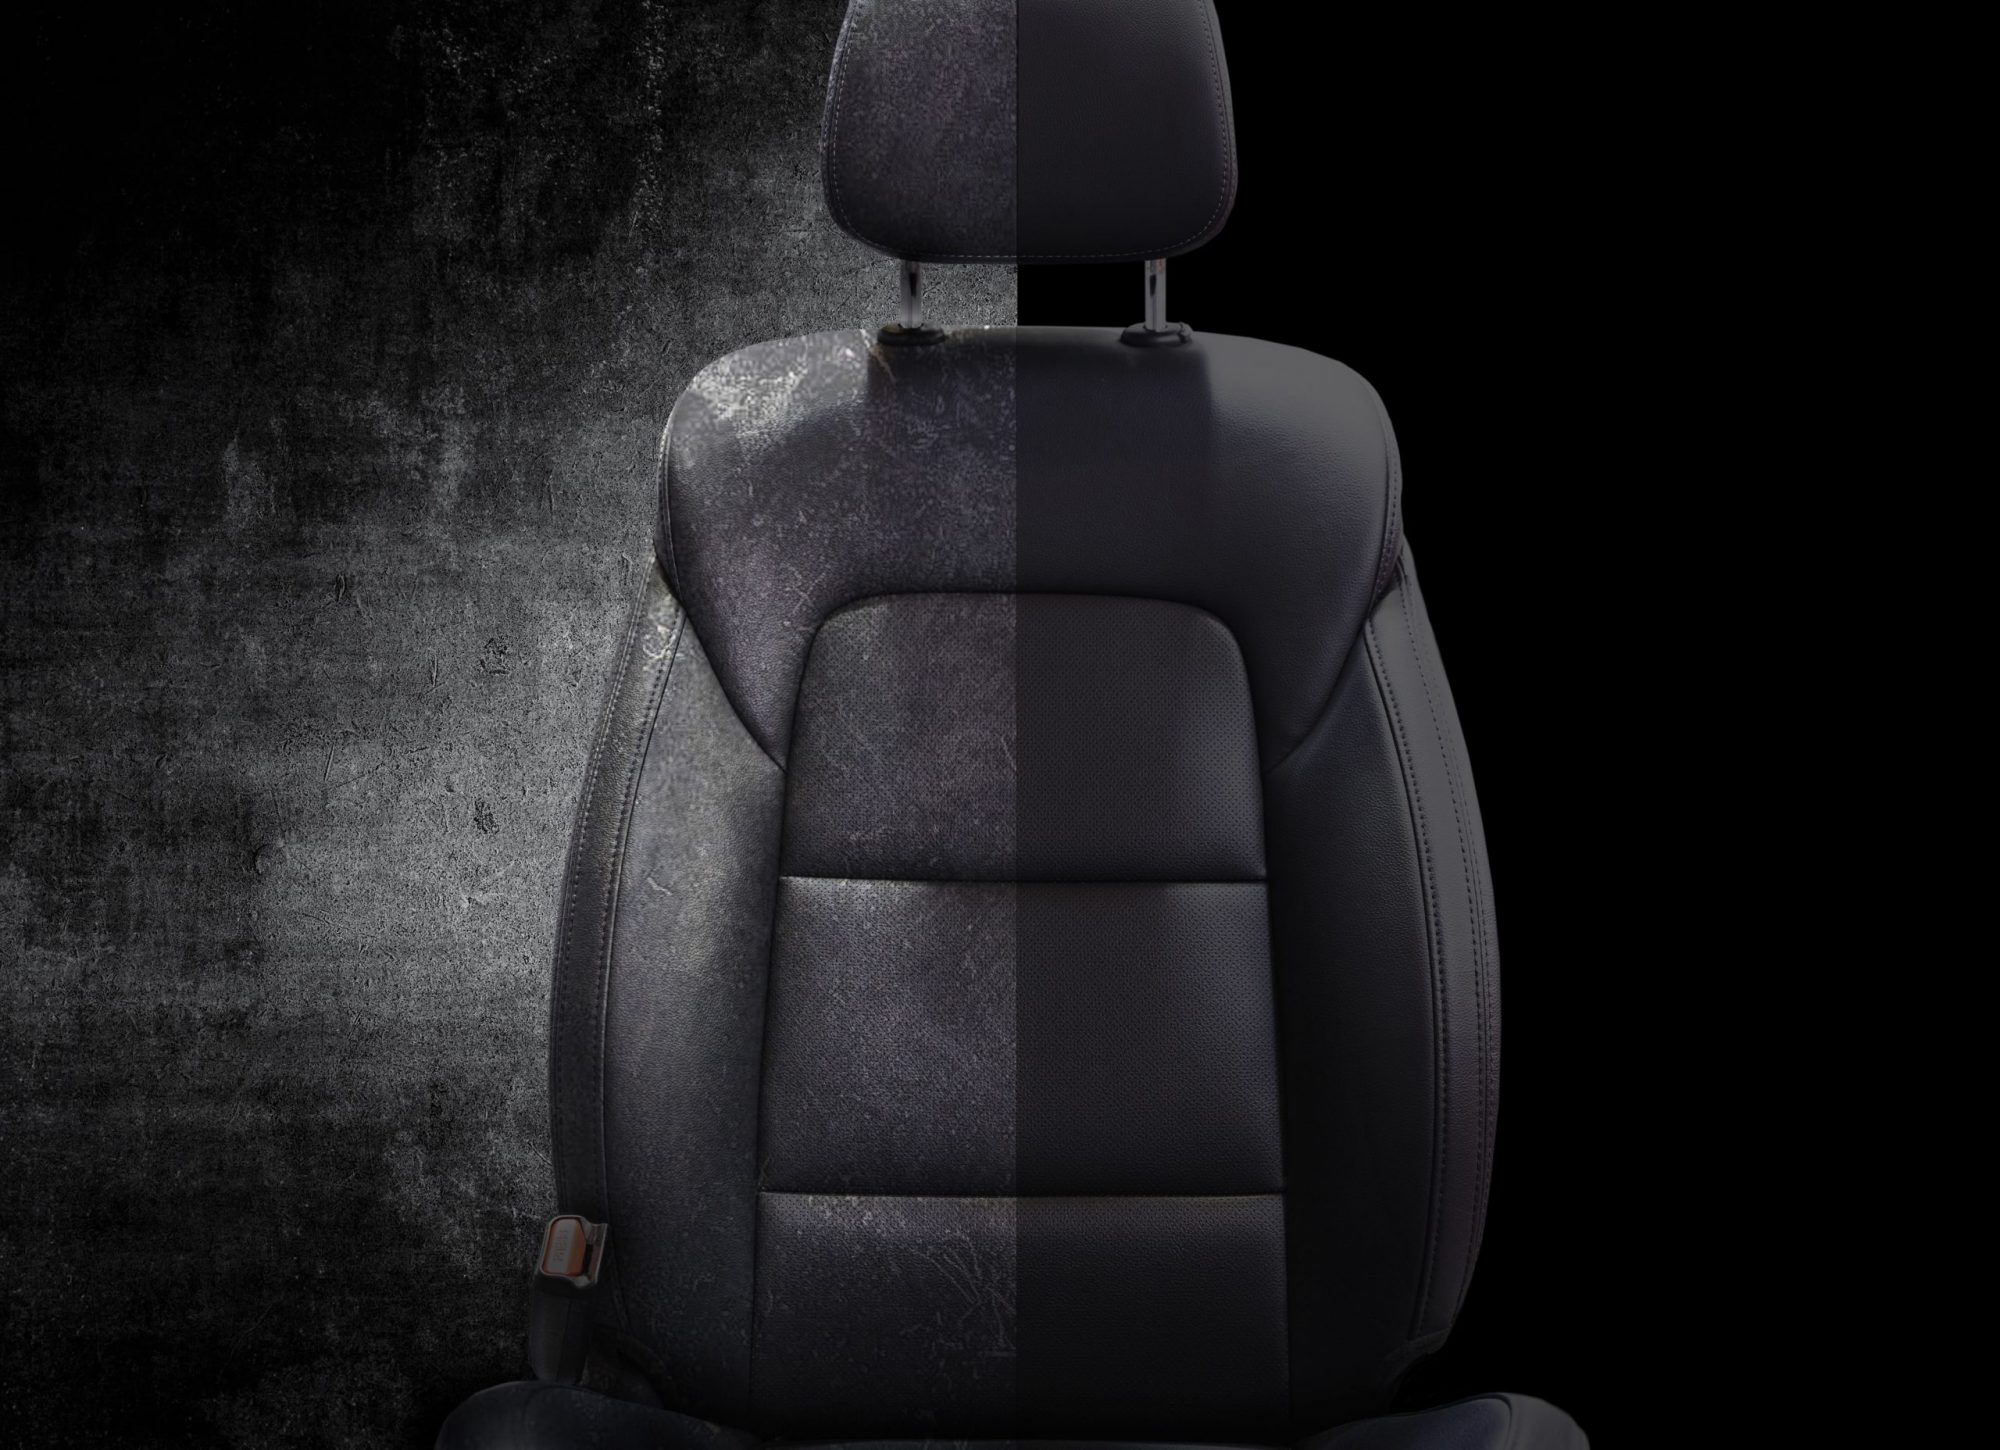 The car fabric chair is a Motor Co accessory